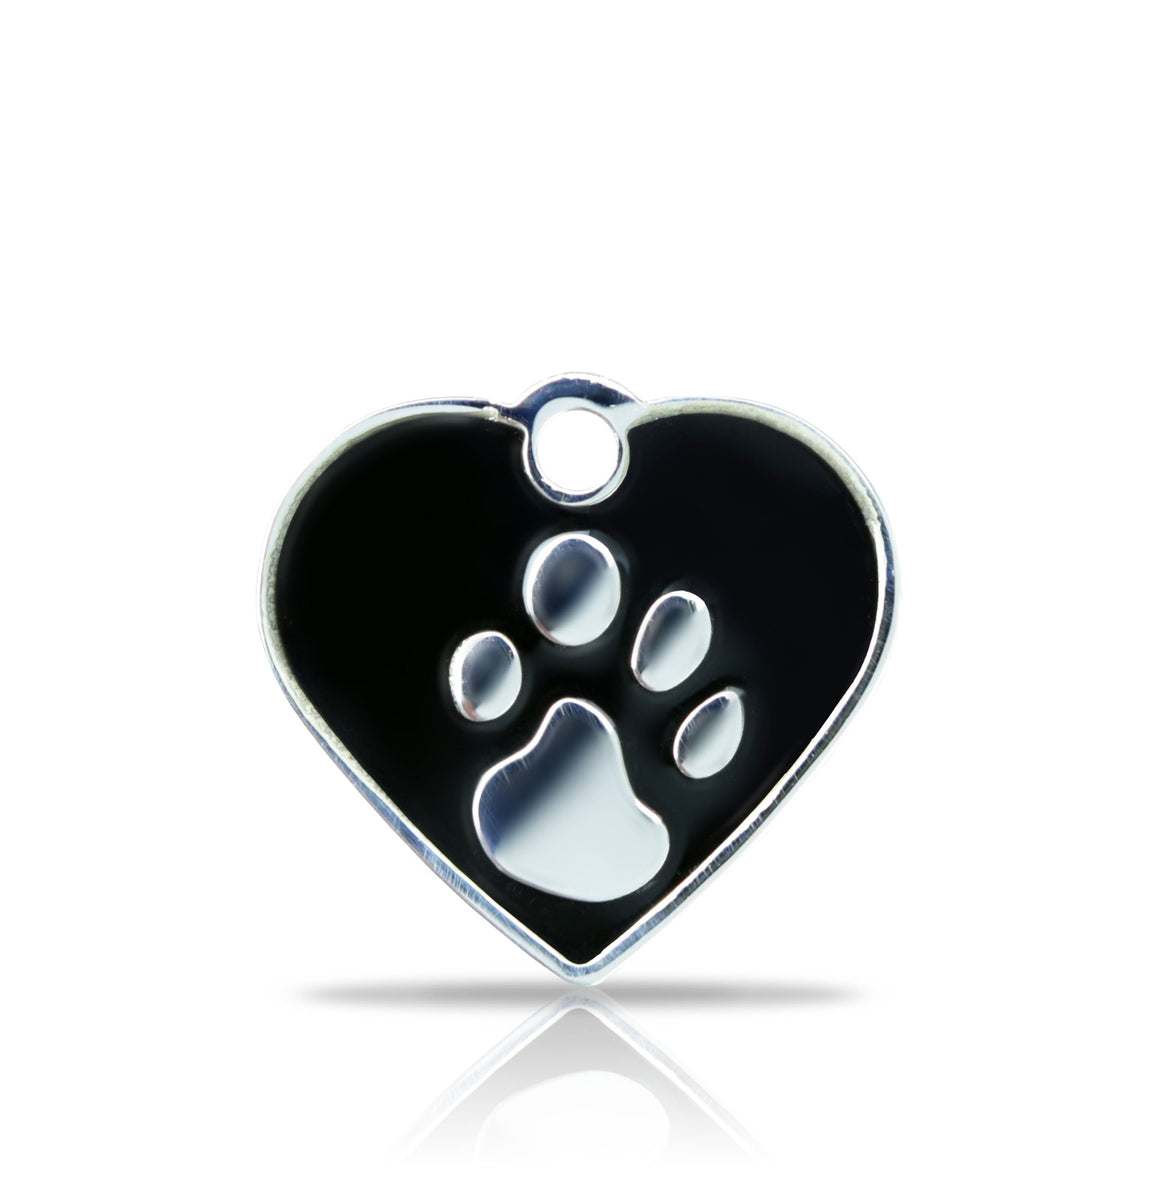 TaggIT Elegance Small Heart Black & Silver iMarc Tag